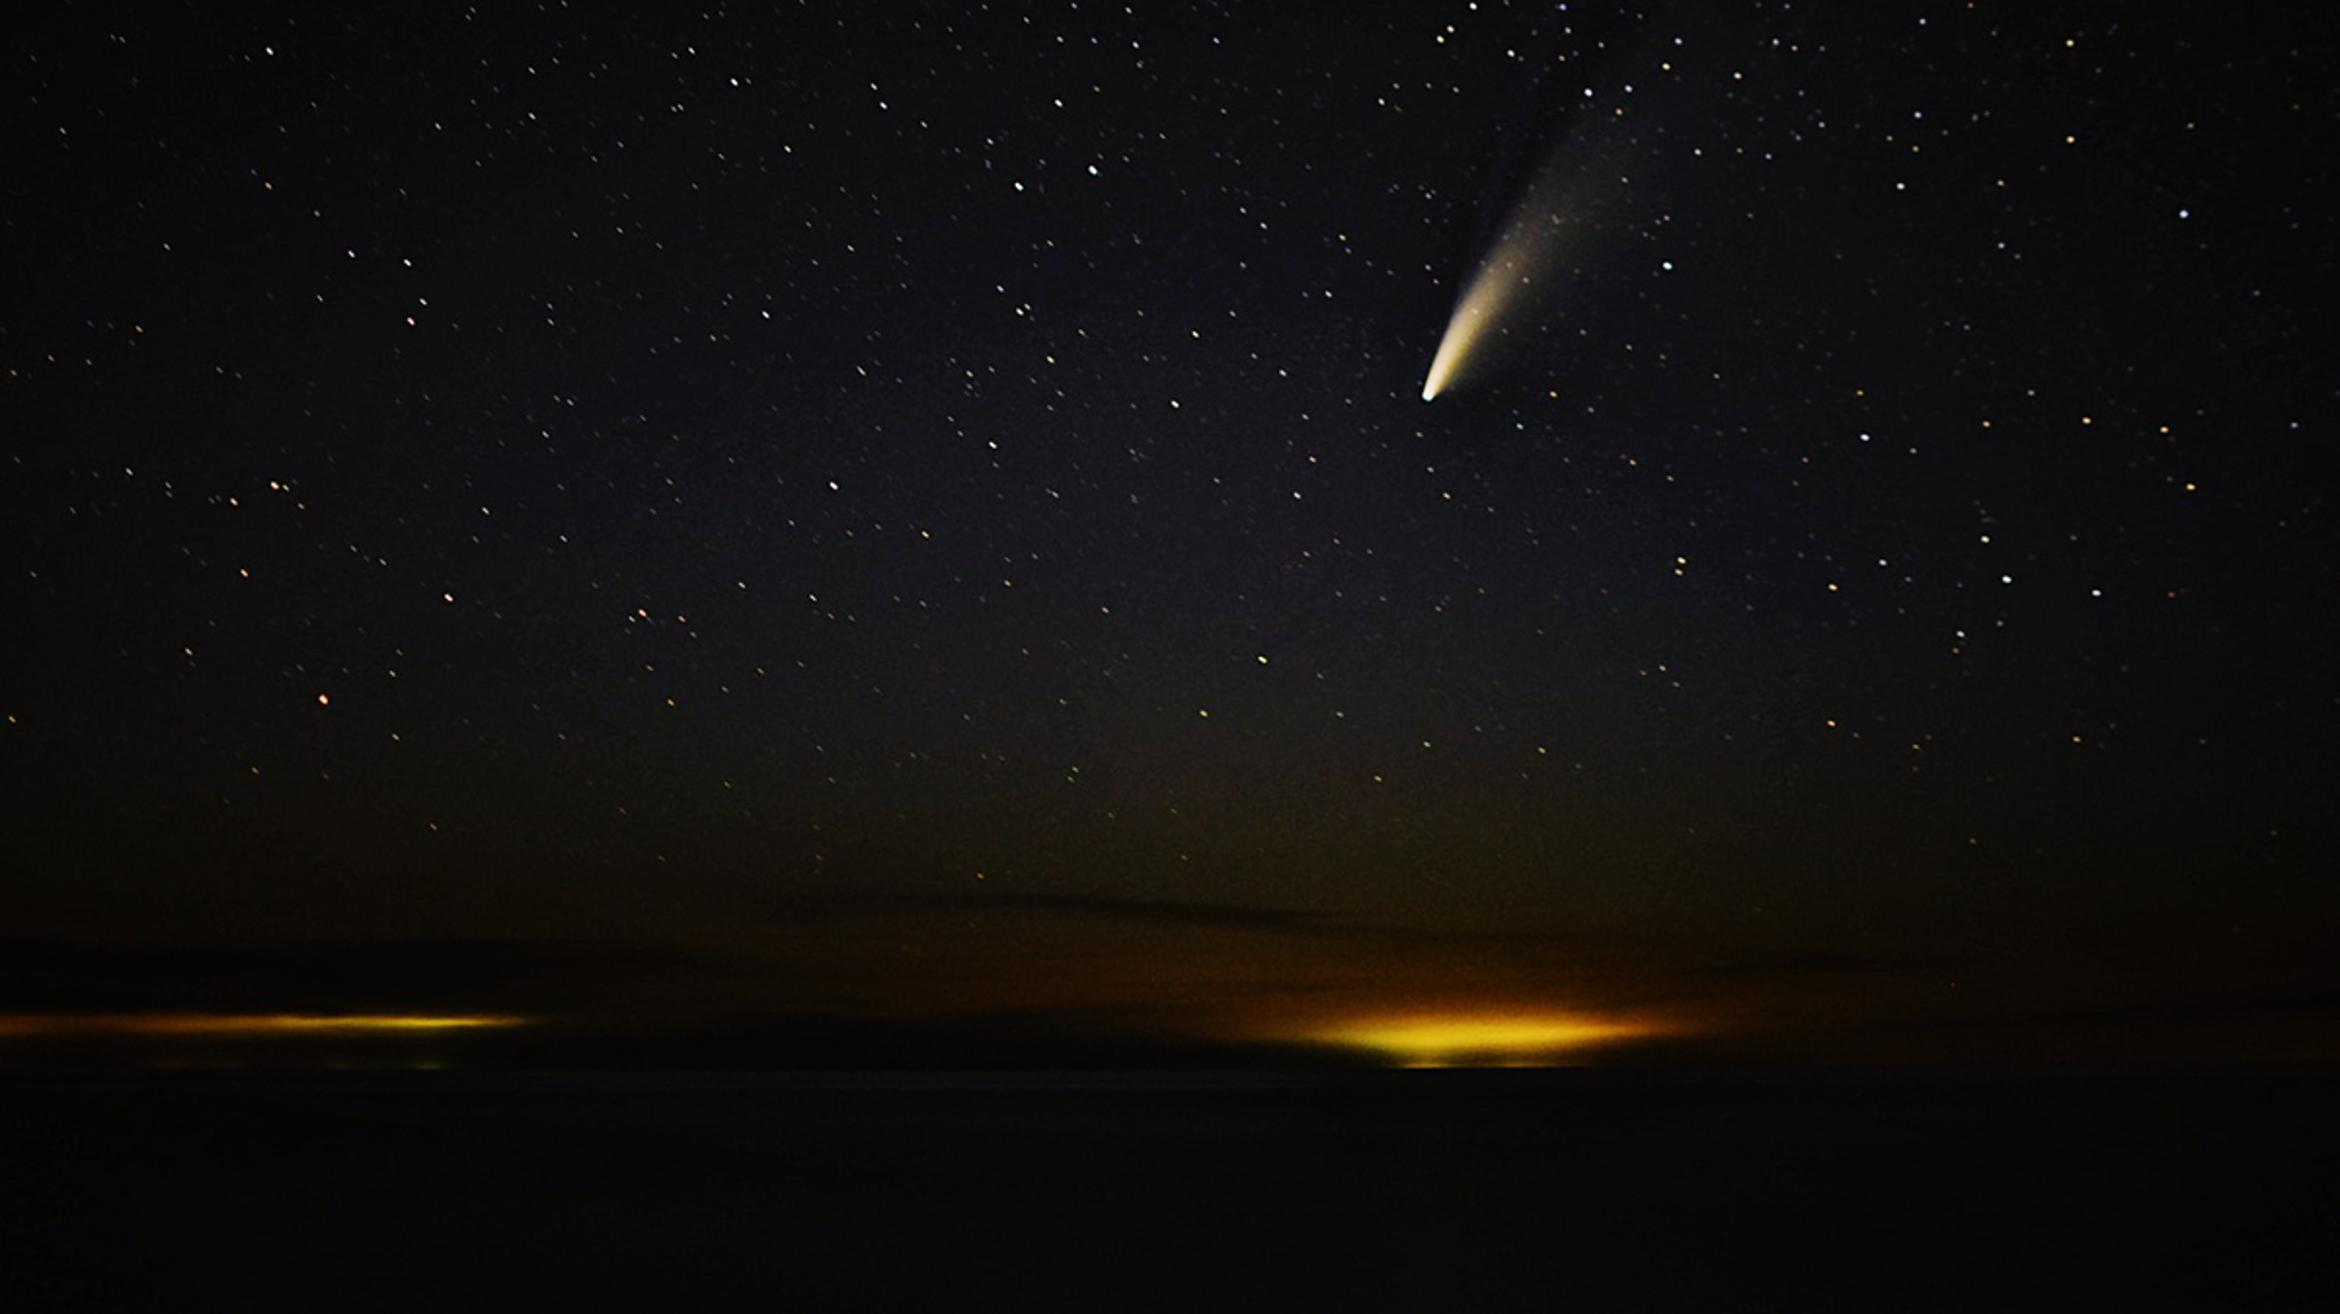 See Comet NEOWISE on the internet tonight in a Slooh webcast